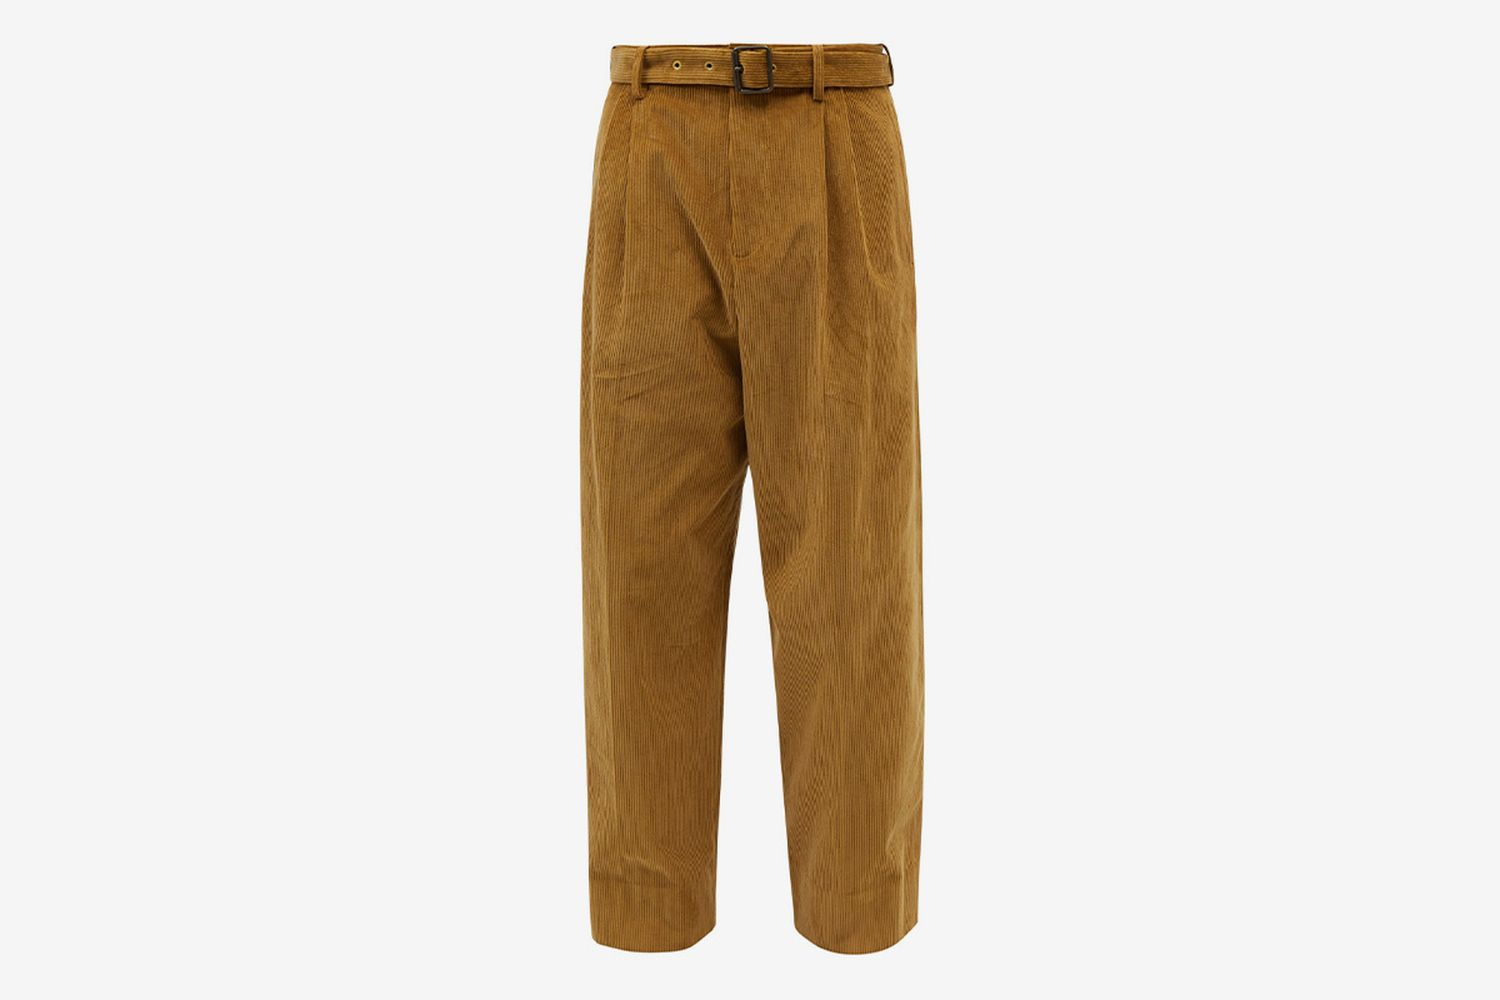 Pleated Corduroy Trousers